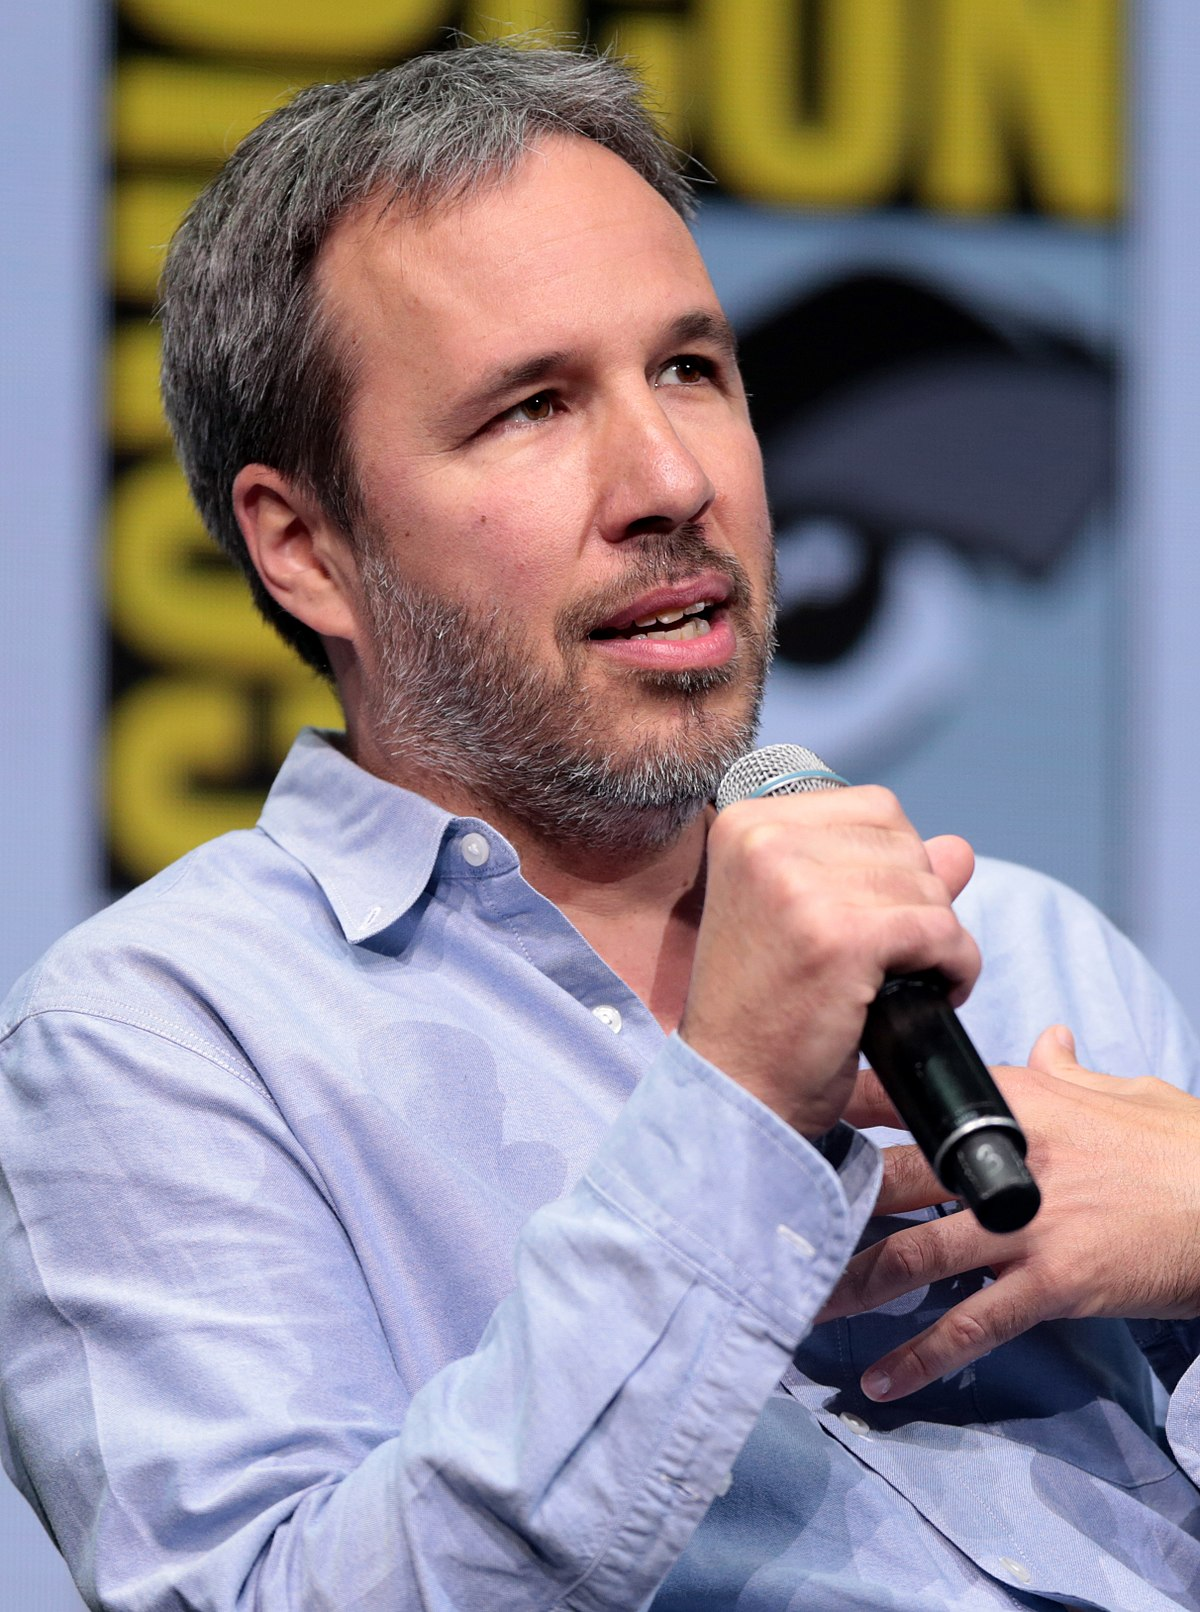 To Bond or Not to Bond? Denis Villeneuve gives mixed messages